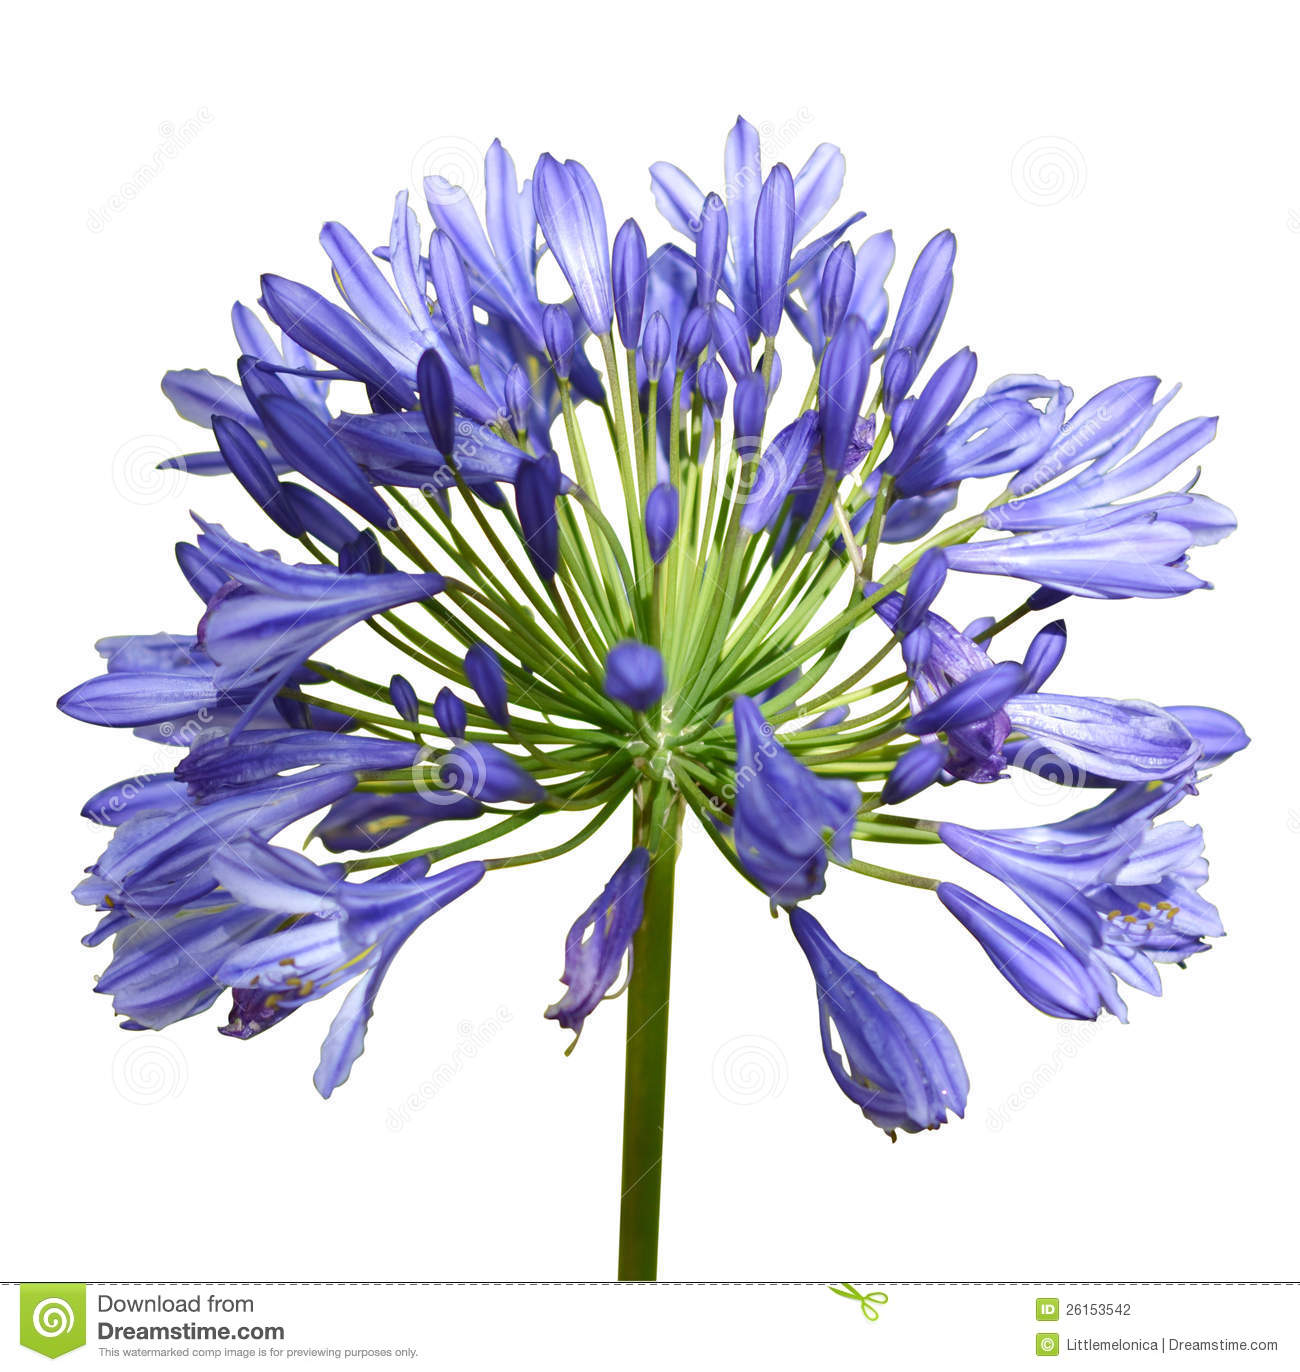 agapanthus flower clipart clipground free bunny clip art gift cards free bunny clipart pictures to download